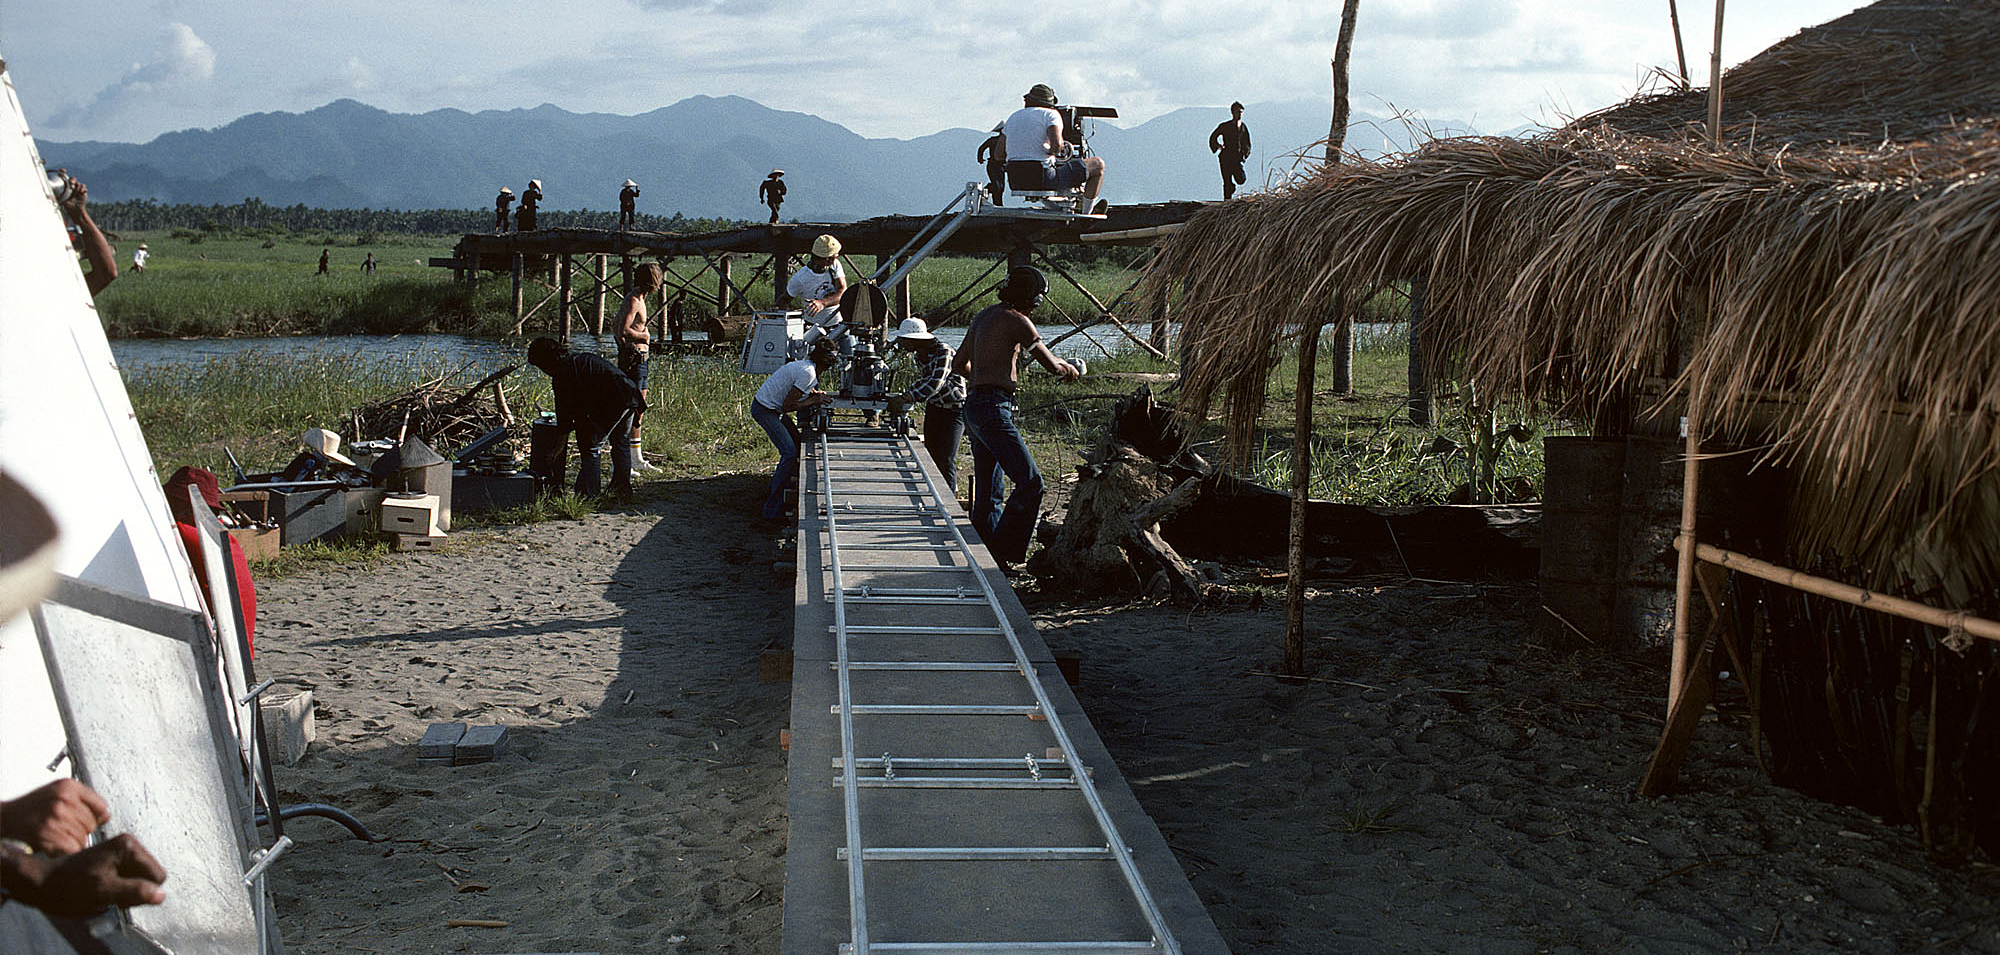 The crew dollies in on Viet Cong soldiers while filming the aerial assault.